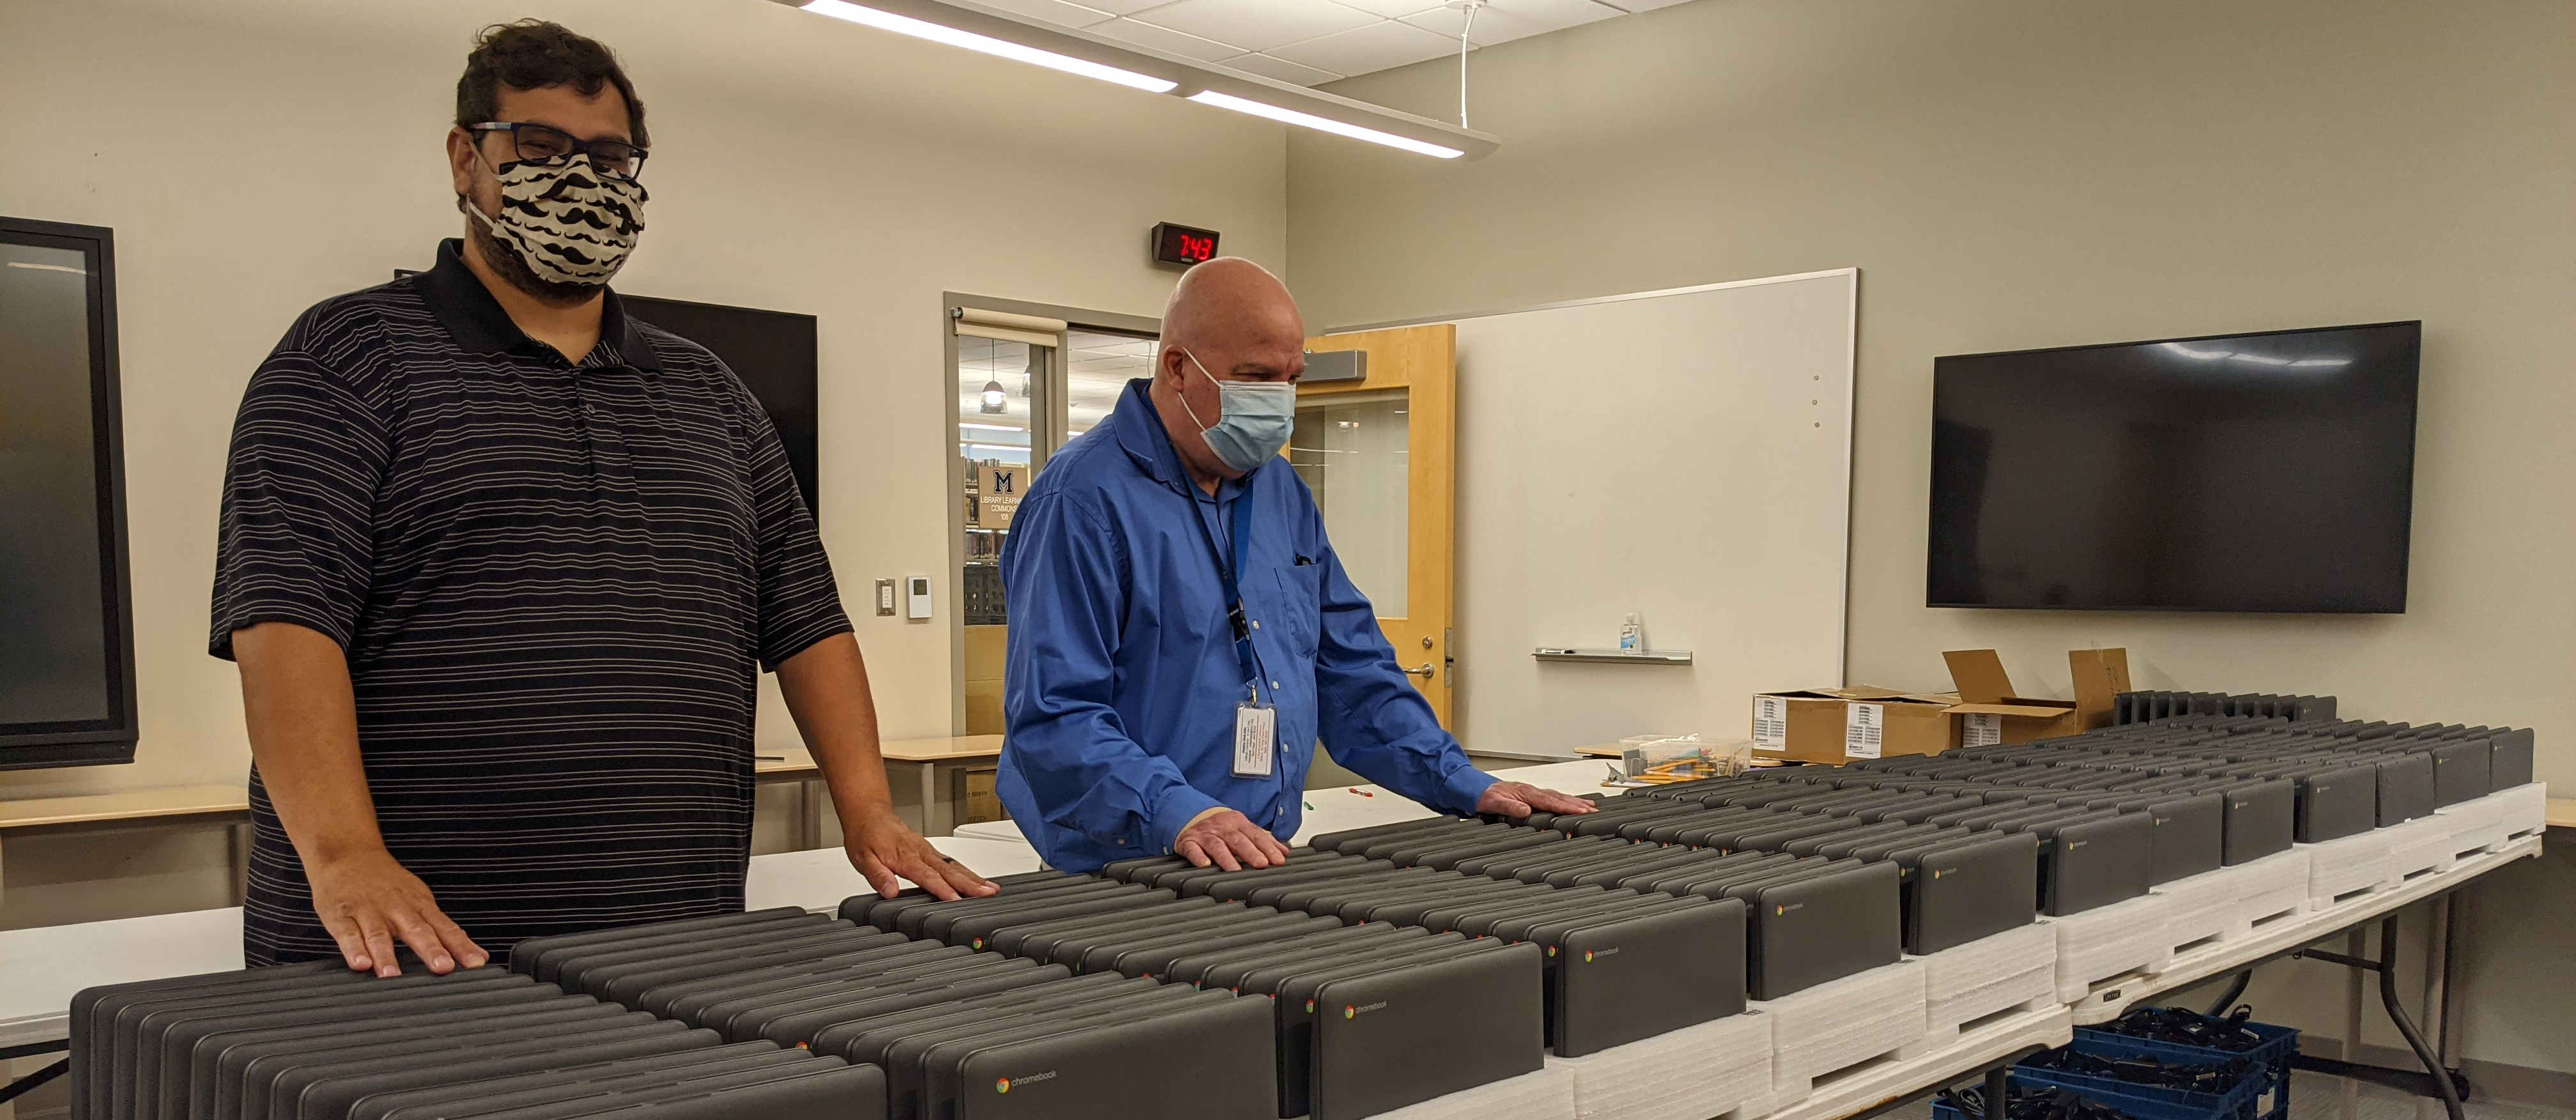 Staff members stand behind hundreds of chromebooks ready to deploy to students